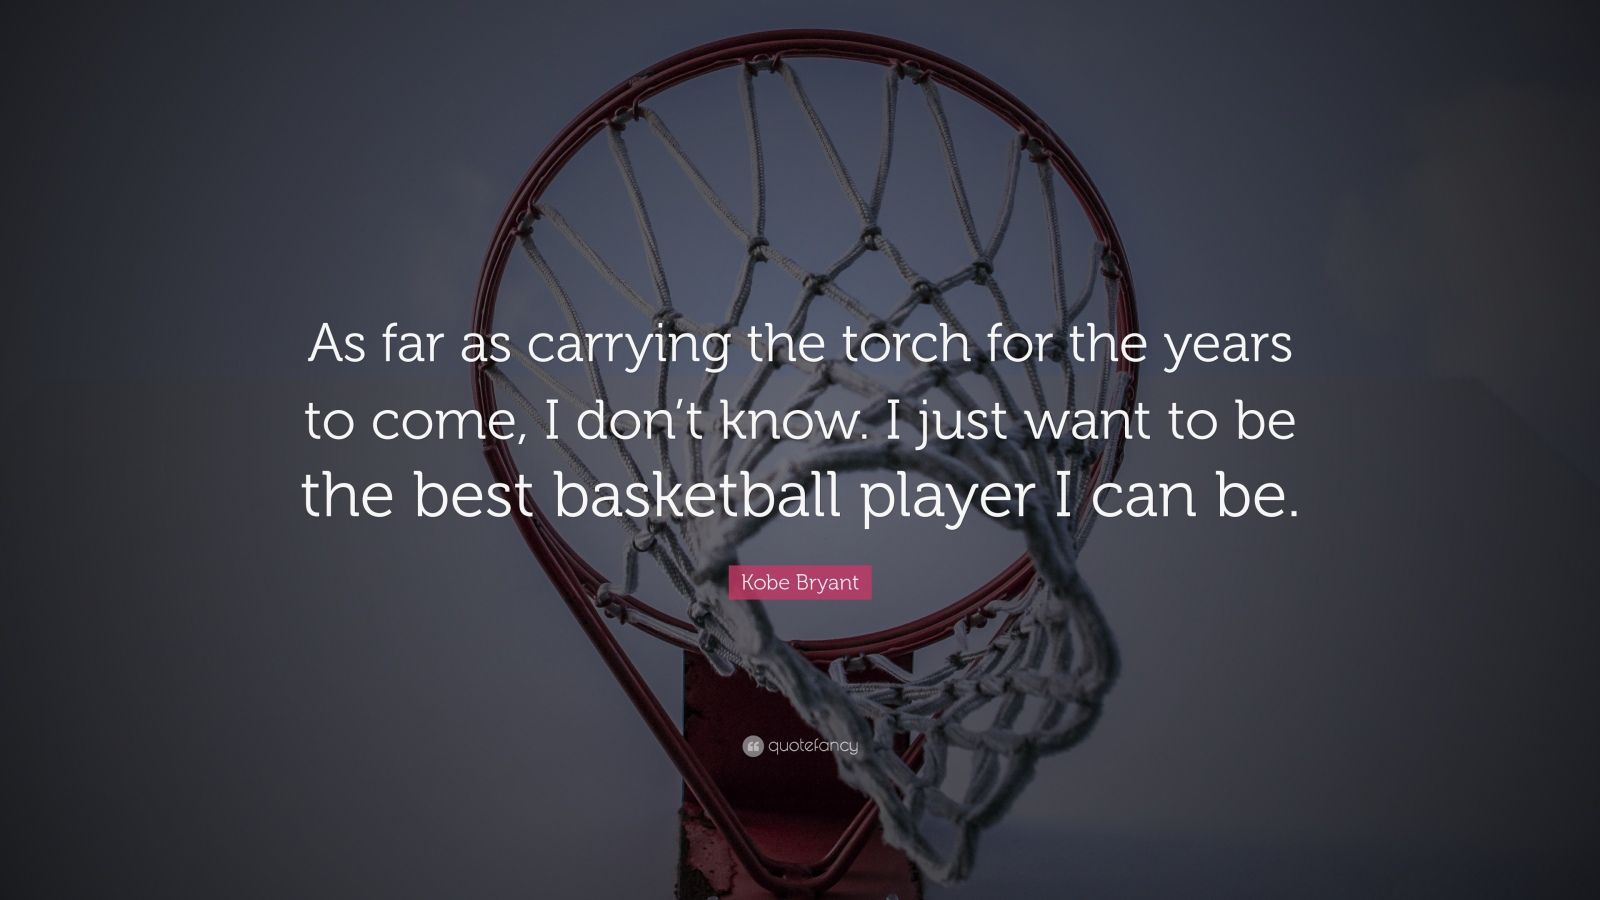 """Kobe Bryant Quote: """"As far as carrying the torch for the years to come, I don't know. I just want to be the best basketball player I can be."""""""